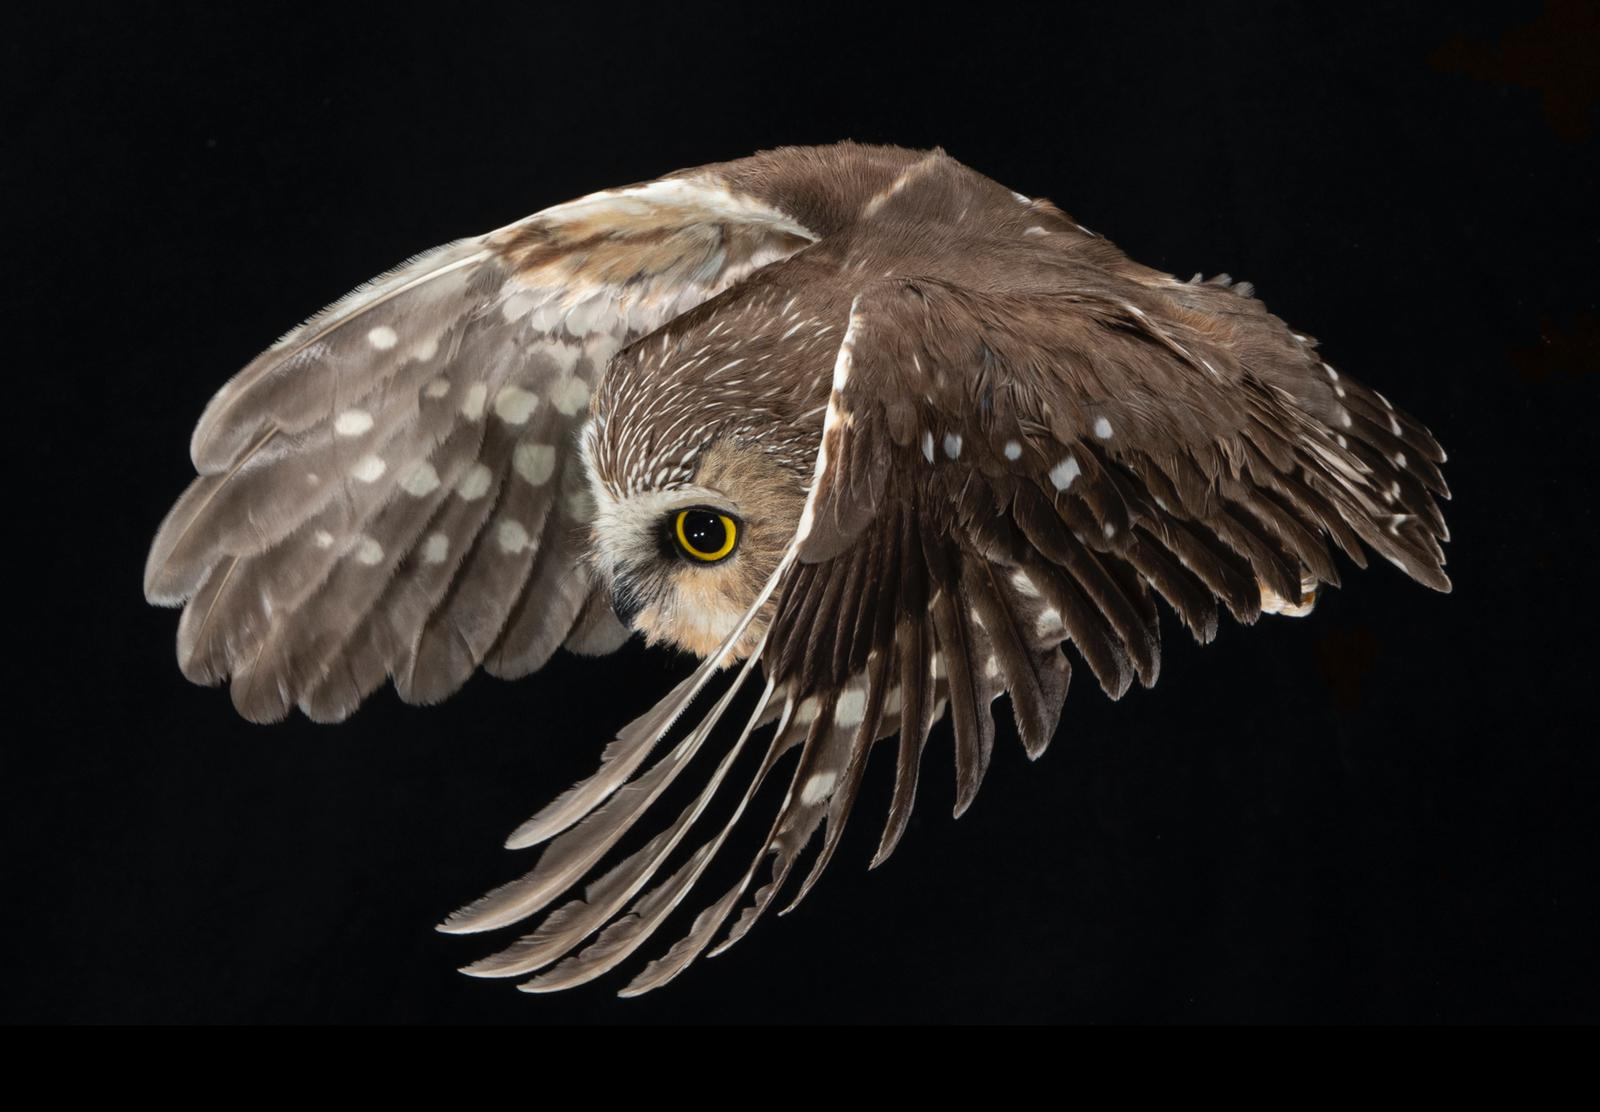 A Northern Saw-whet Owl